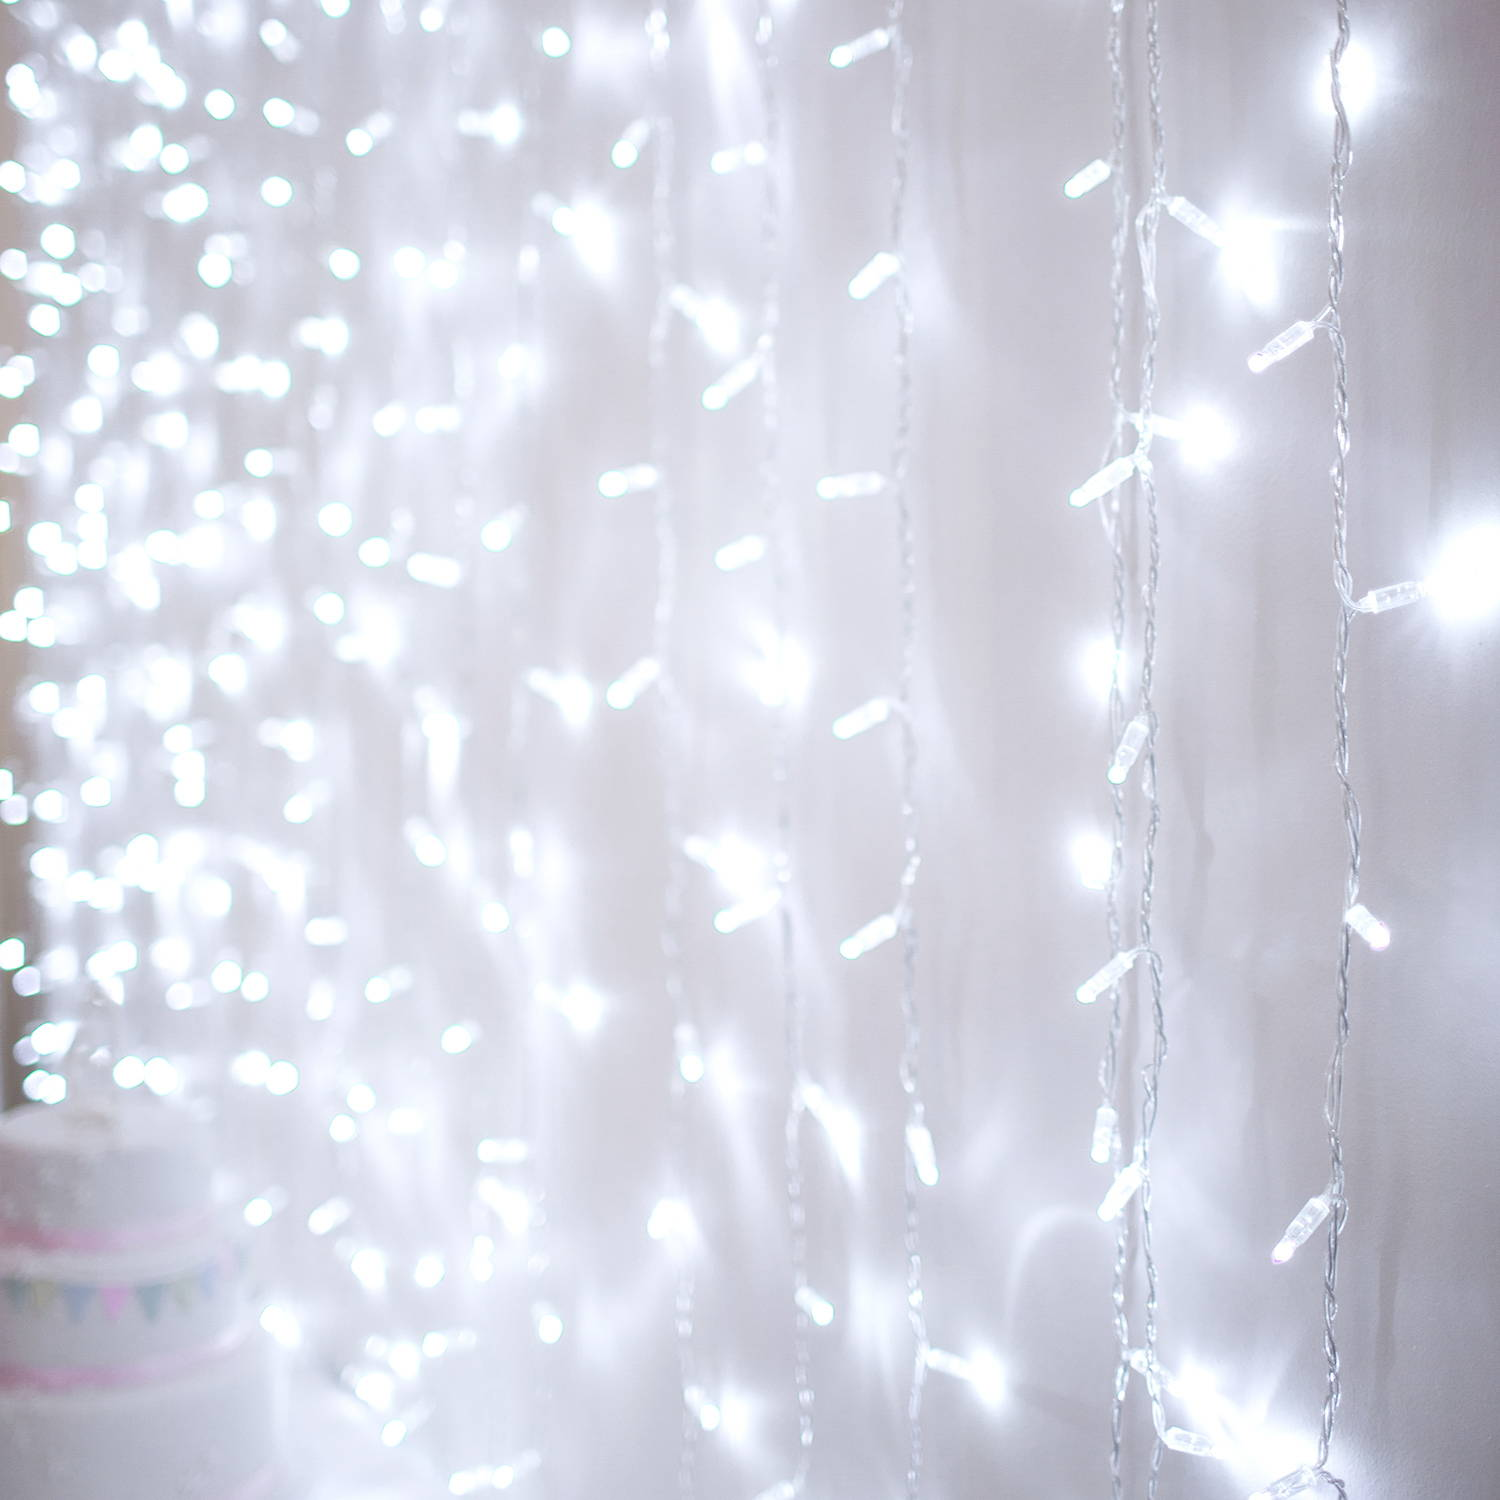 A close up of an ice white curtain light on a neutral background